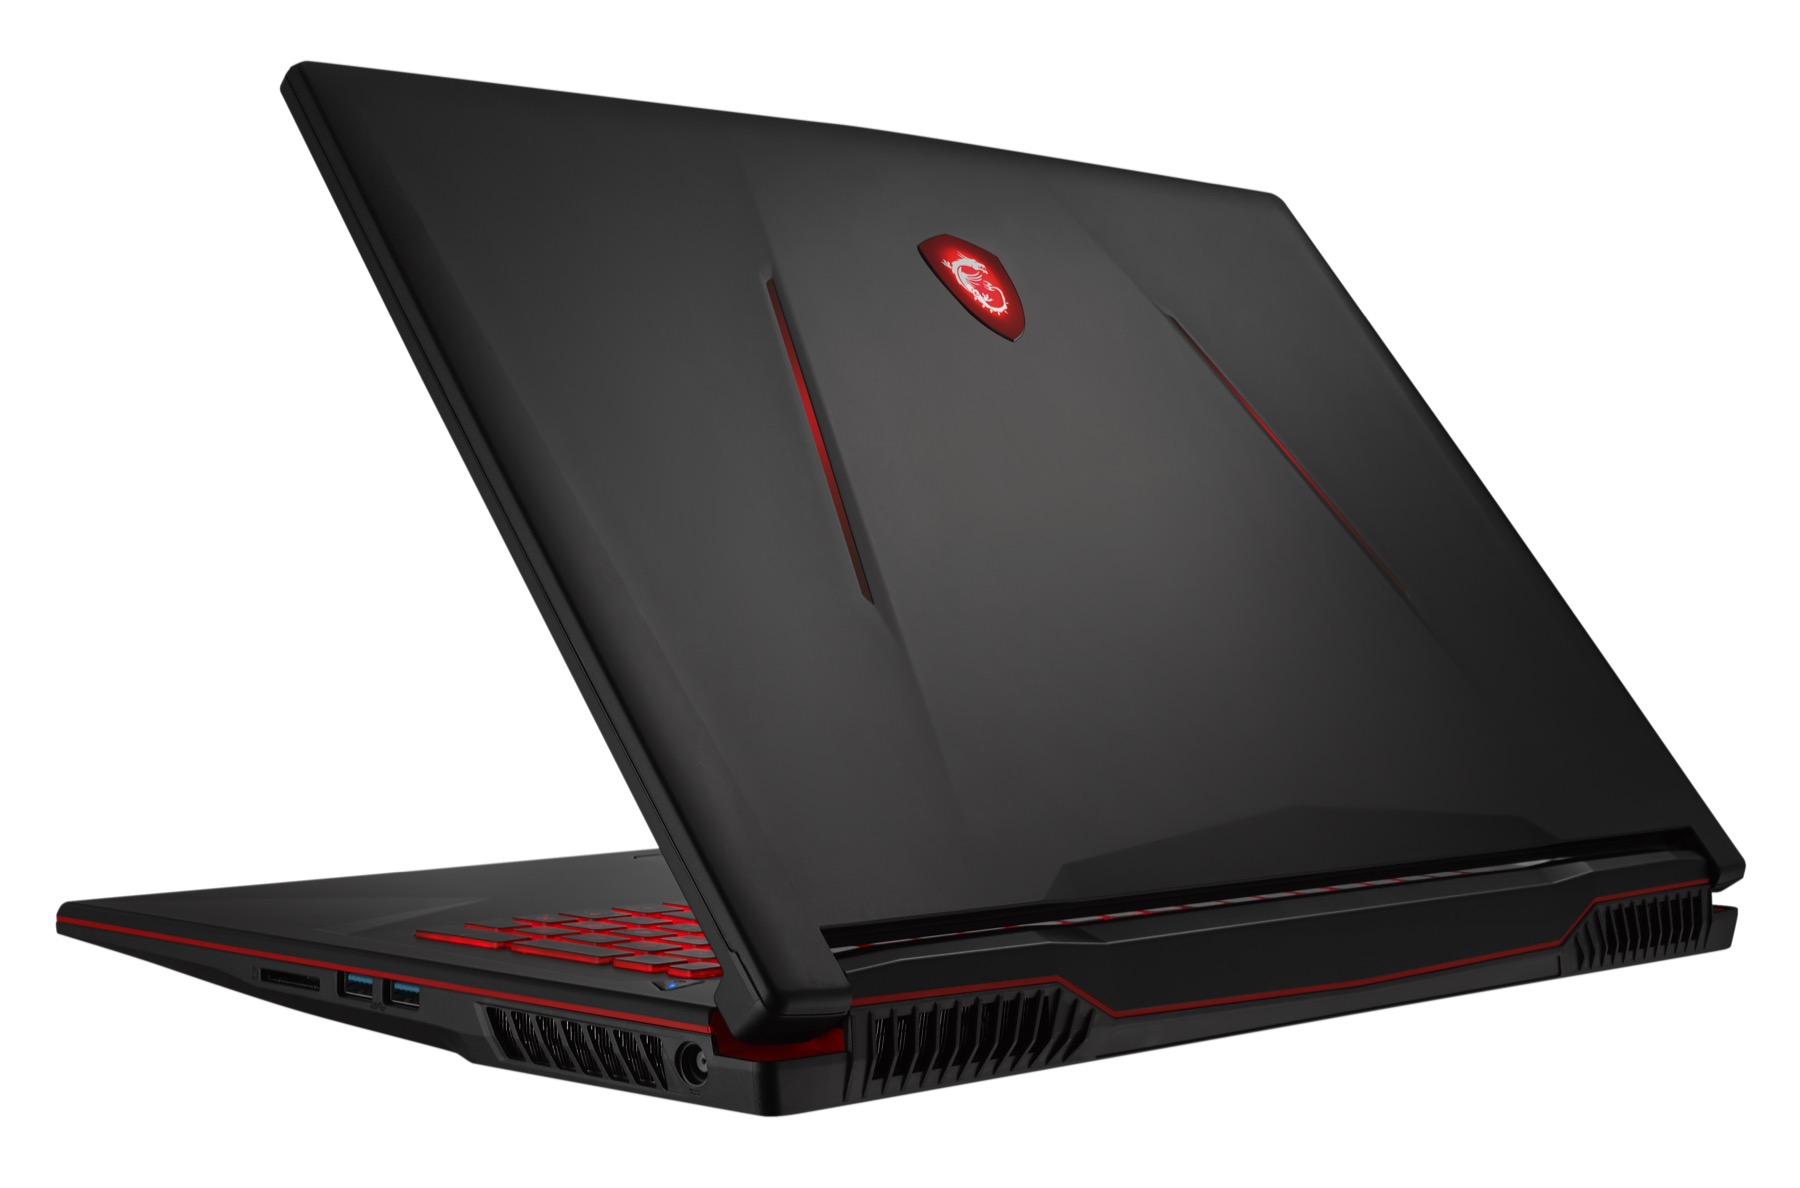 The Msi Gl73 63 Budget Gaming Laptops Are Powered By The